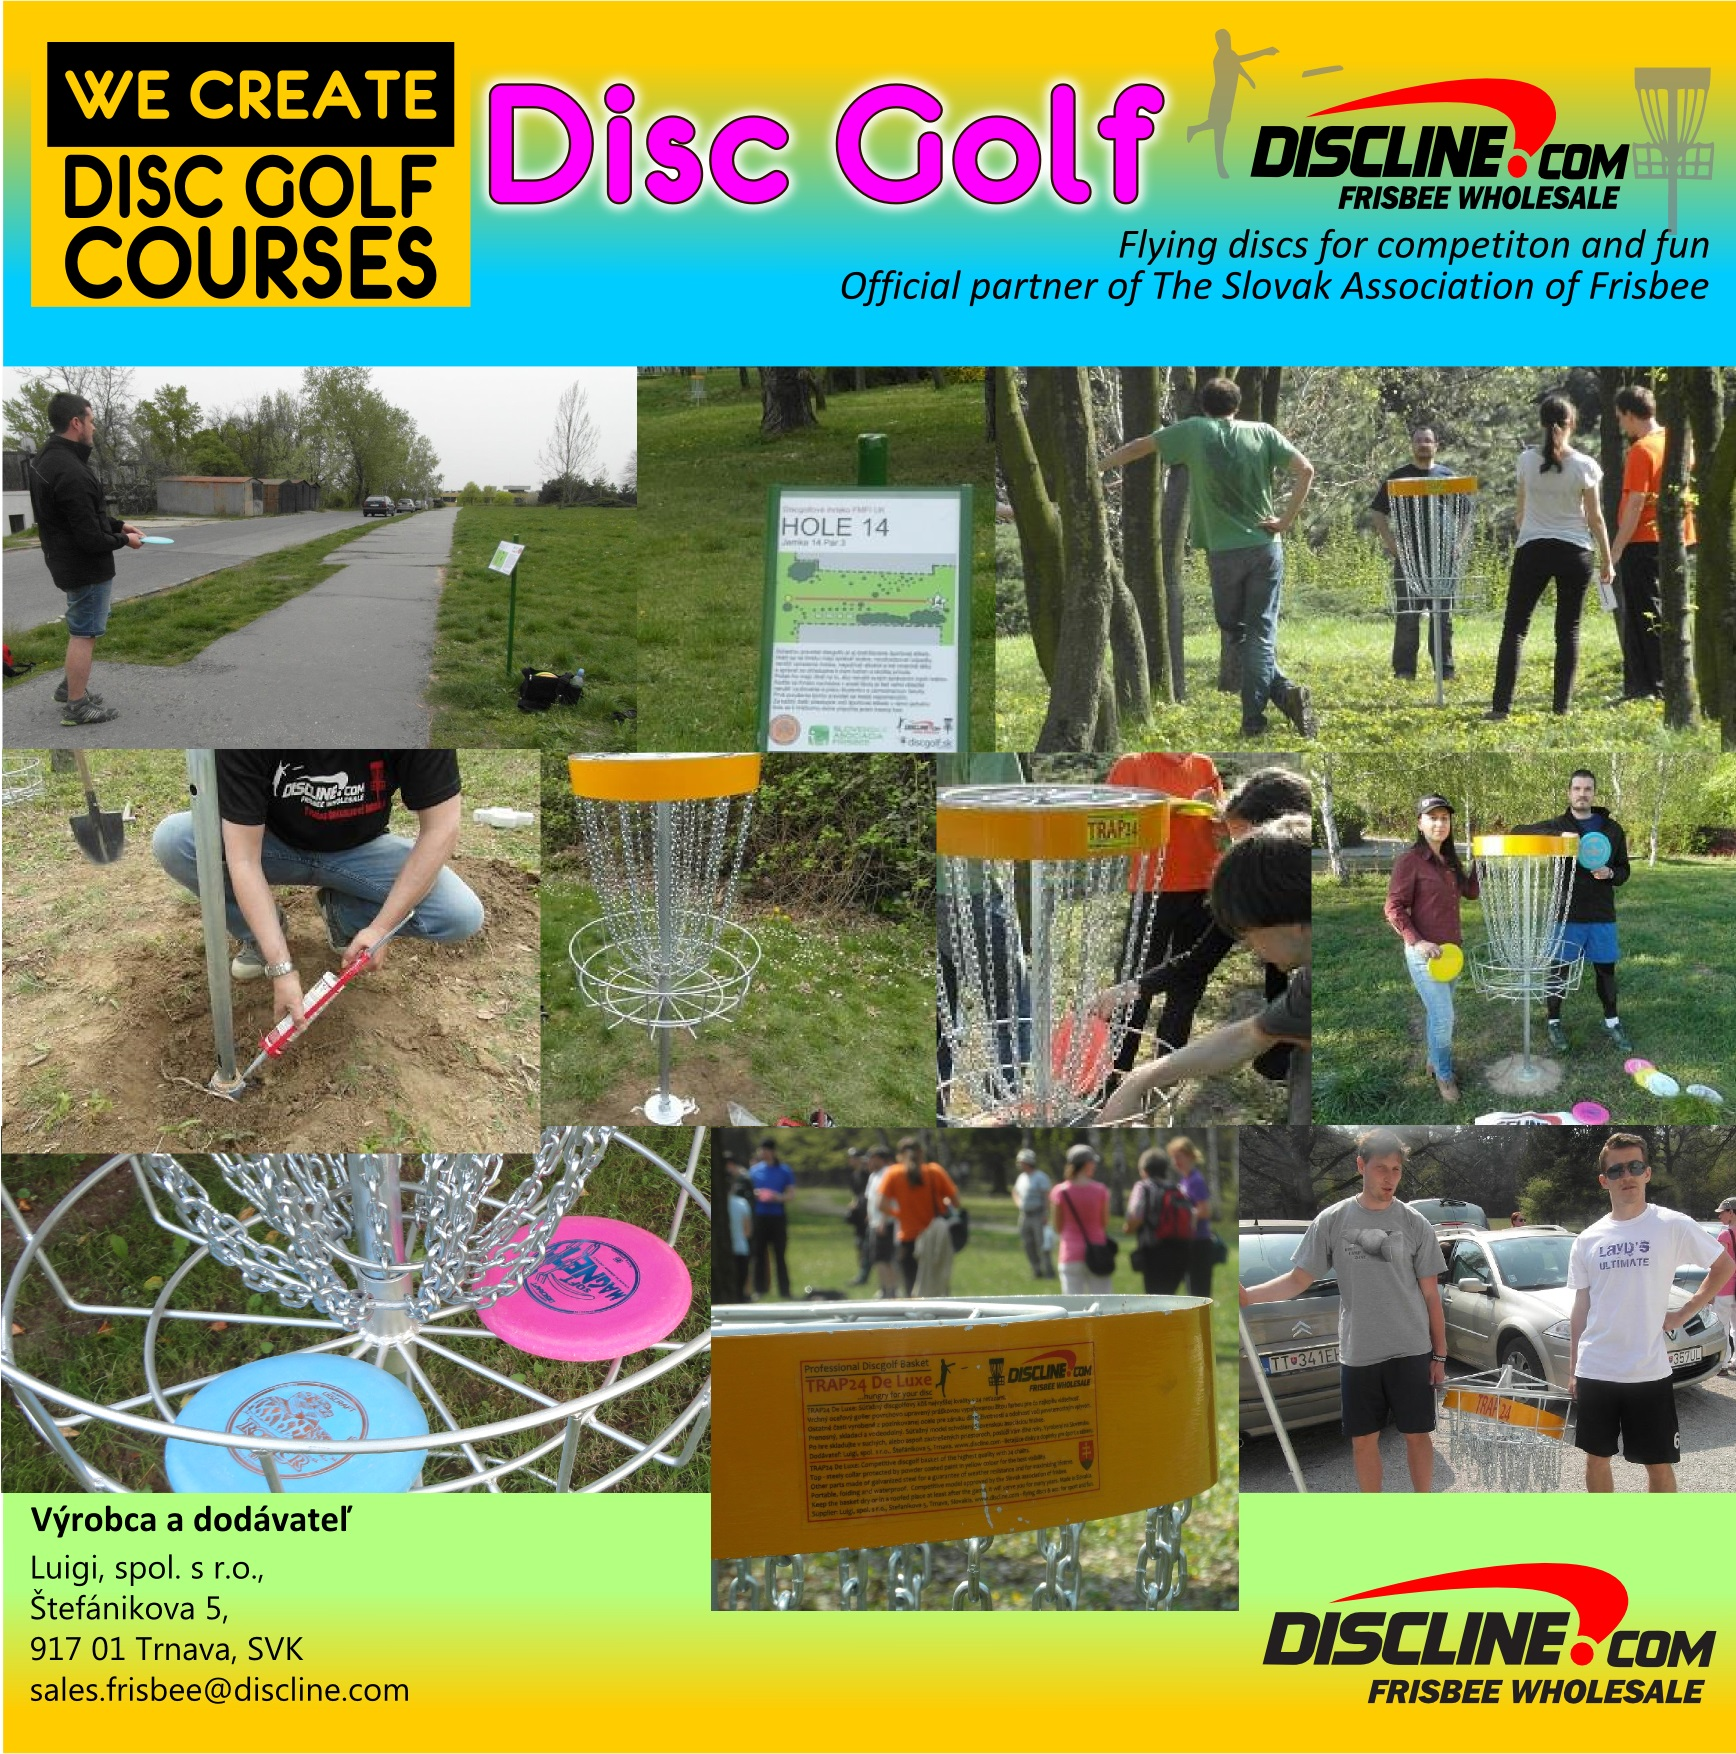 Discgolf course